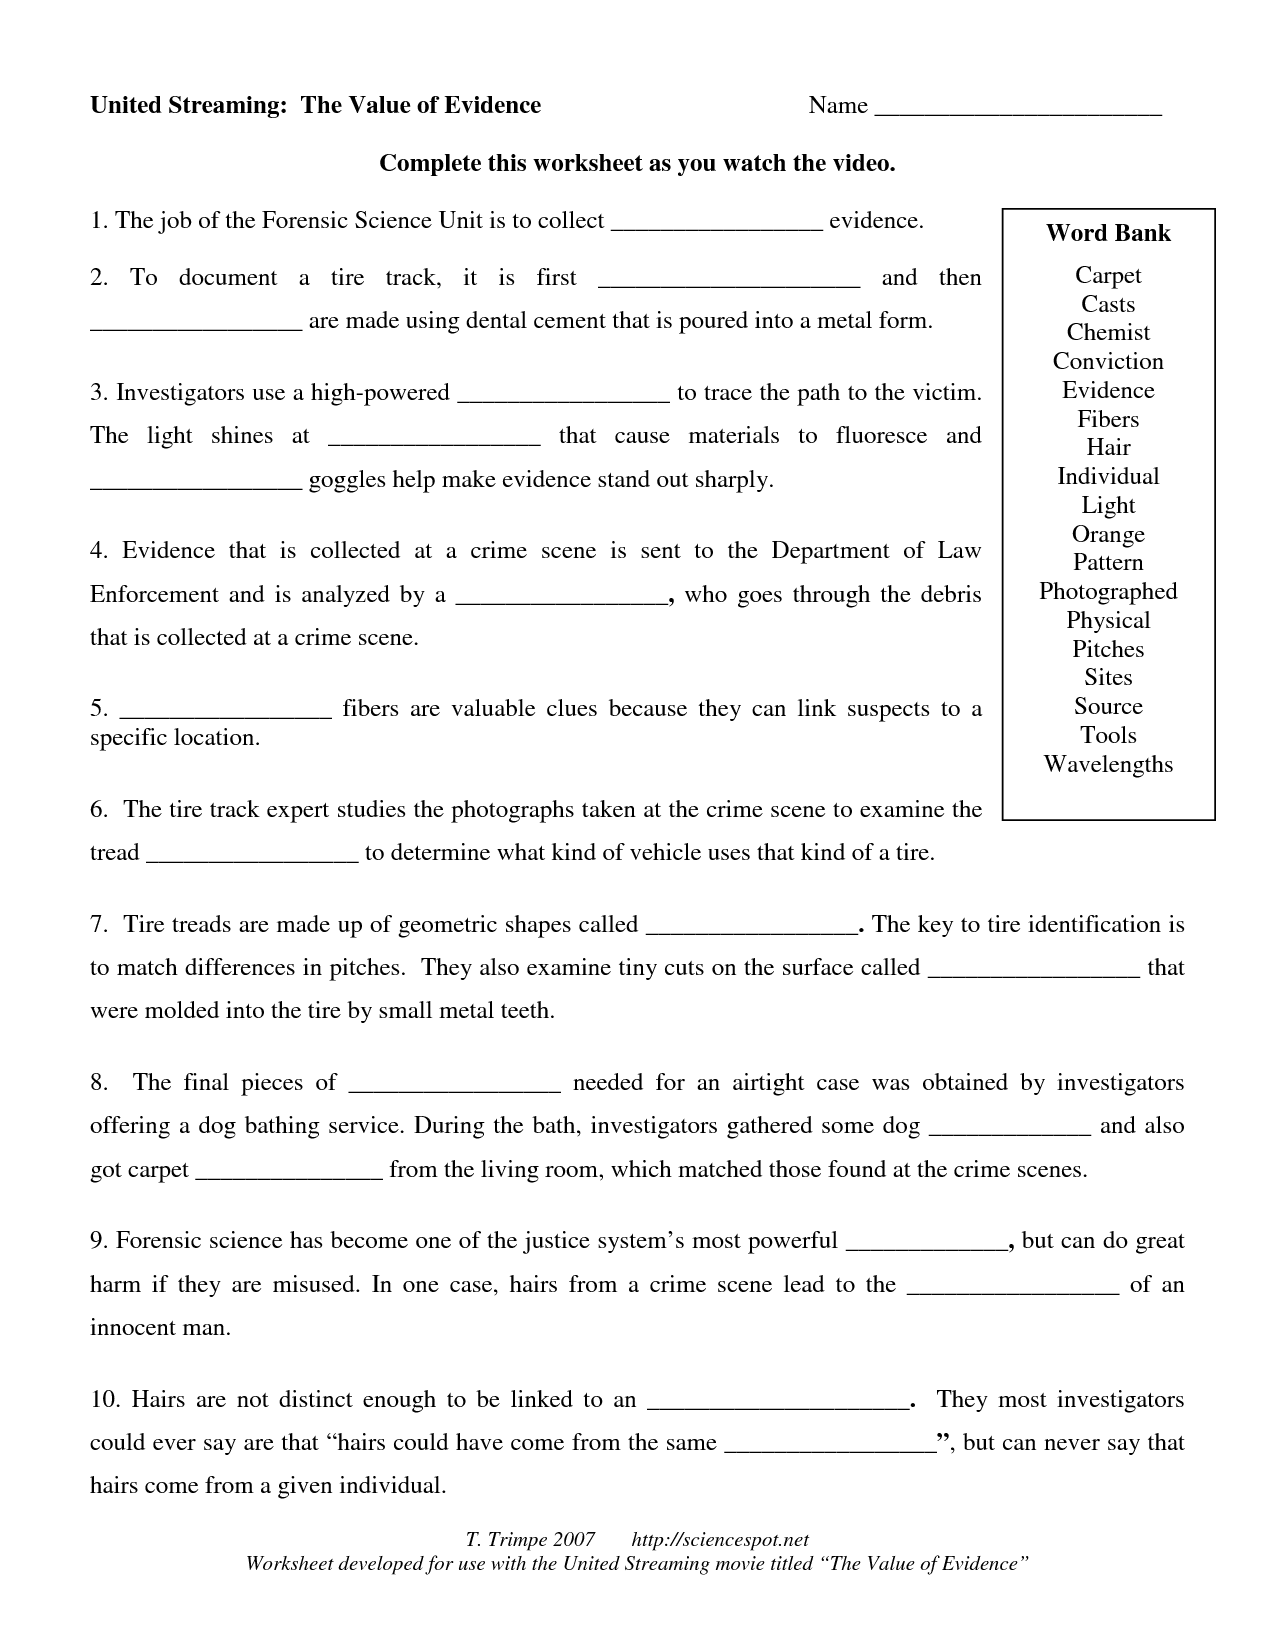 worksheet Forensic Science Case Study Worksheet forensic science worksheets free library download and 14 best im ges of high school w ksheets pr t ble